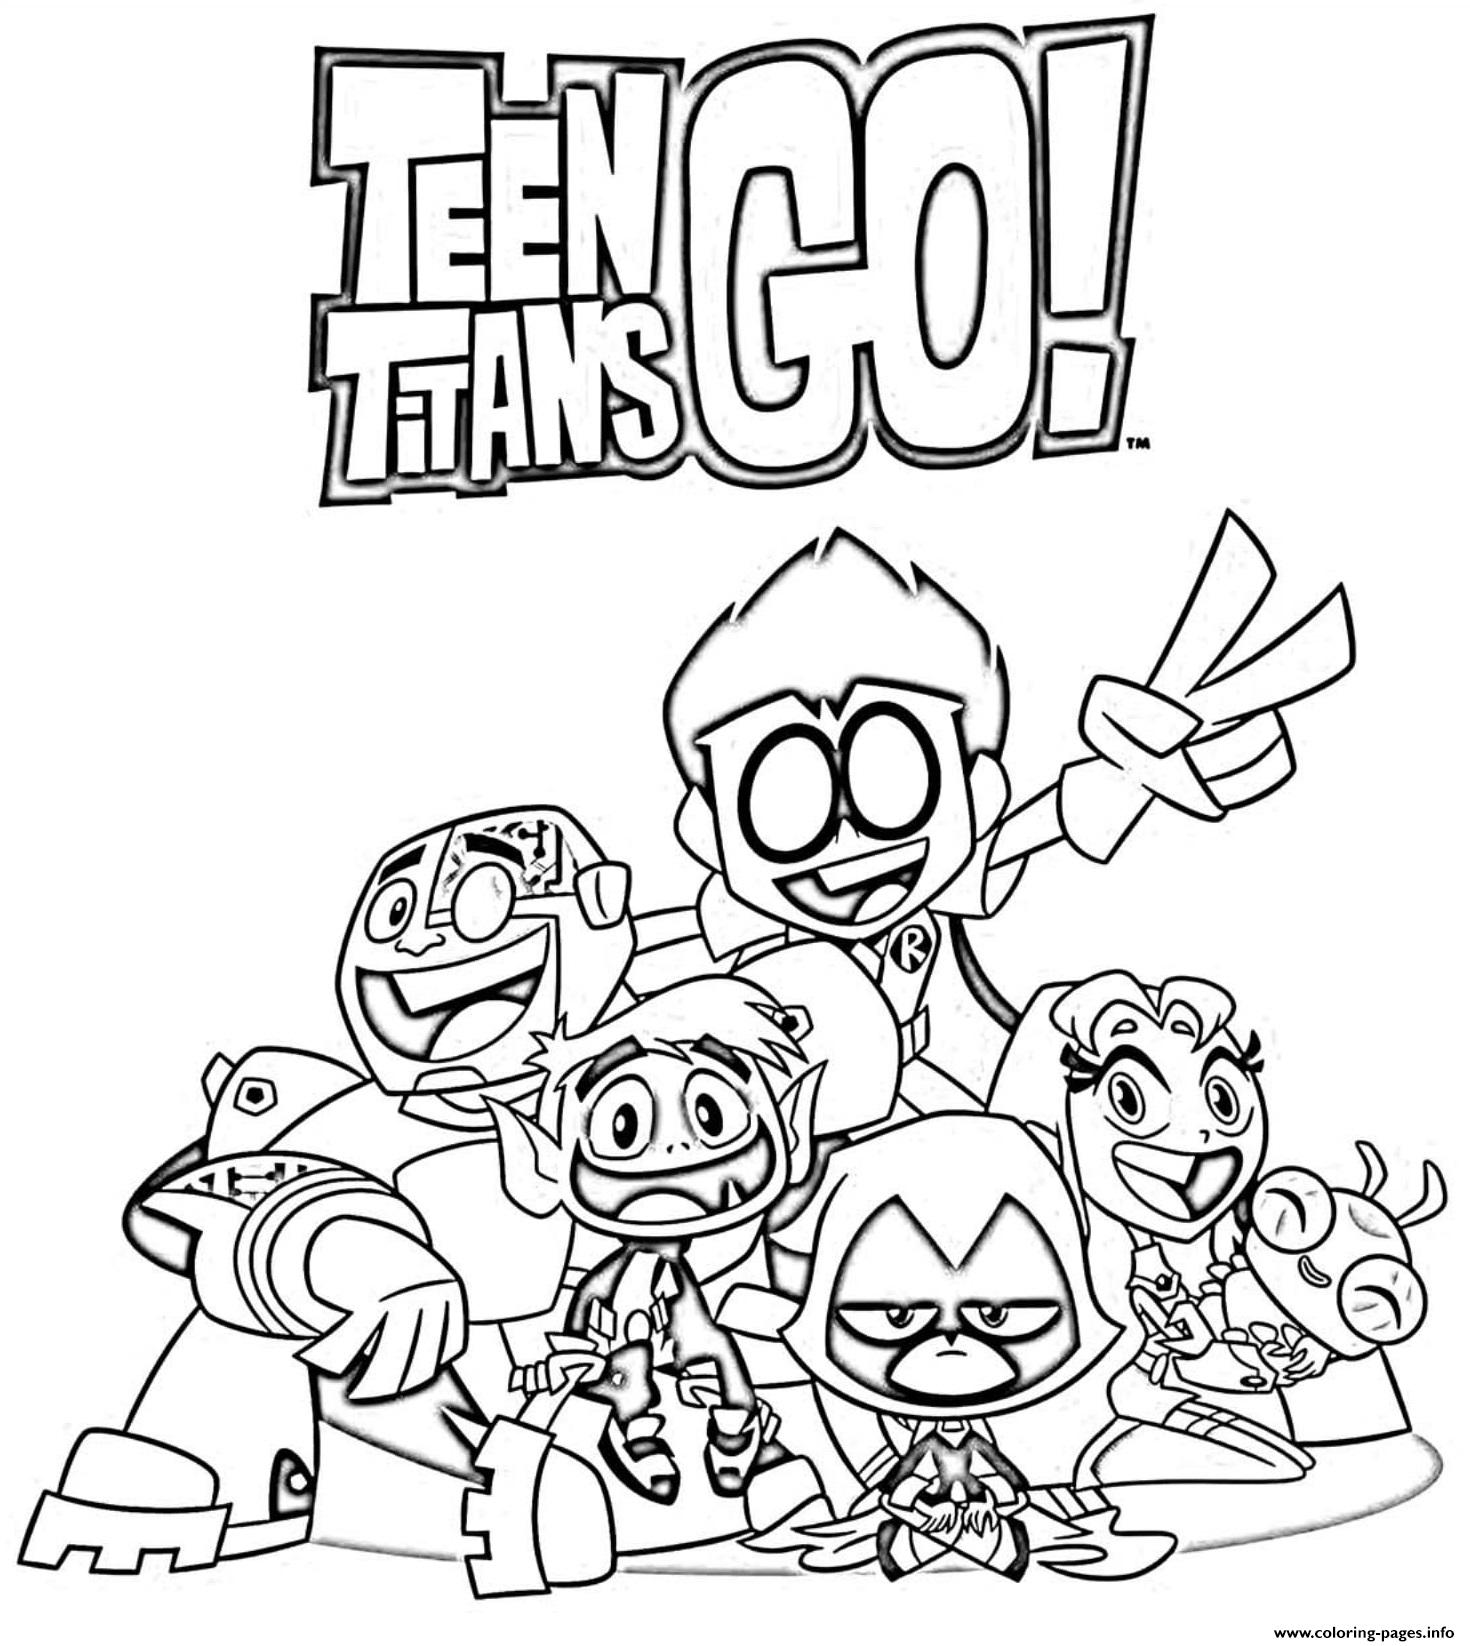 teen titans coloring pages teen titans go starfire coloring pages sketch coloring page titans teen pages coloring